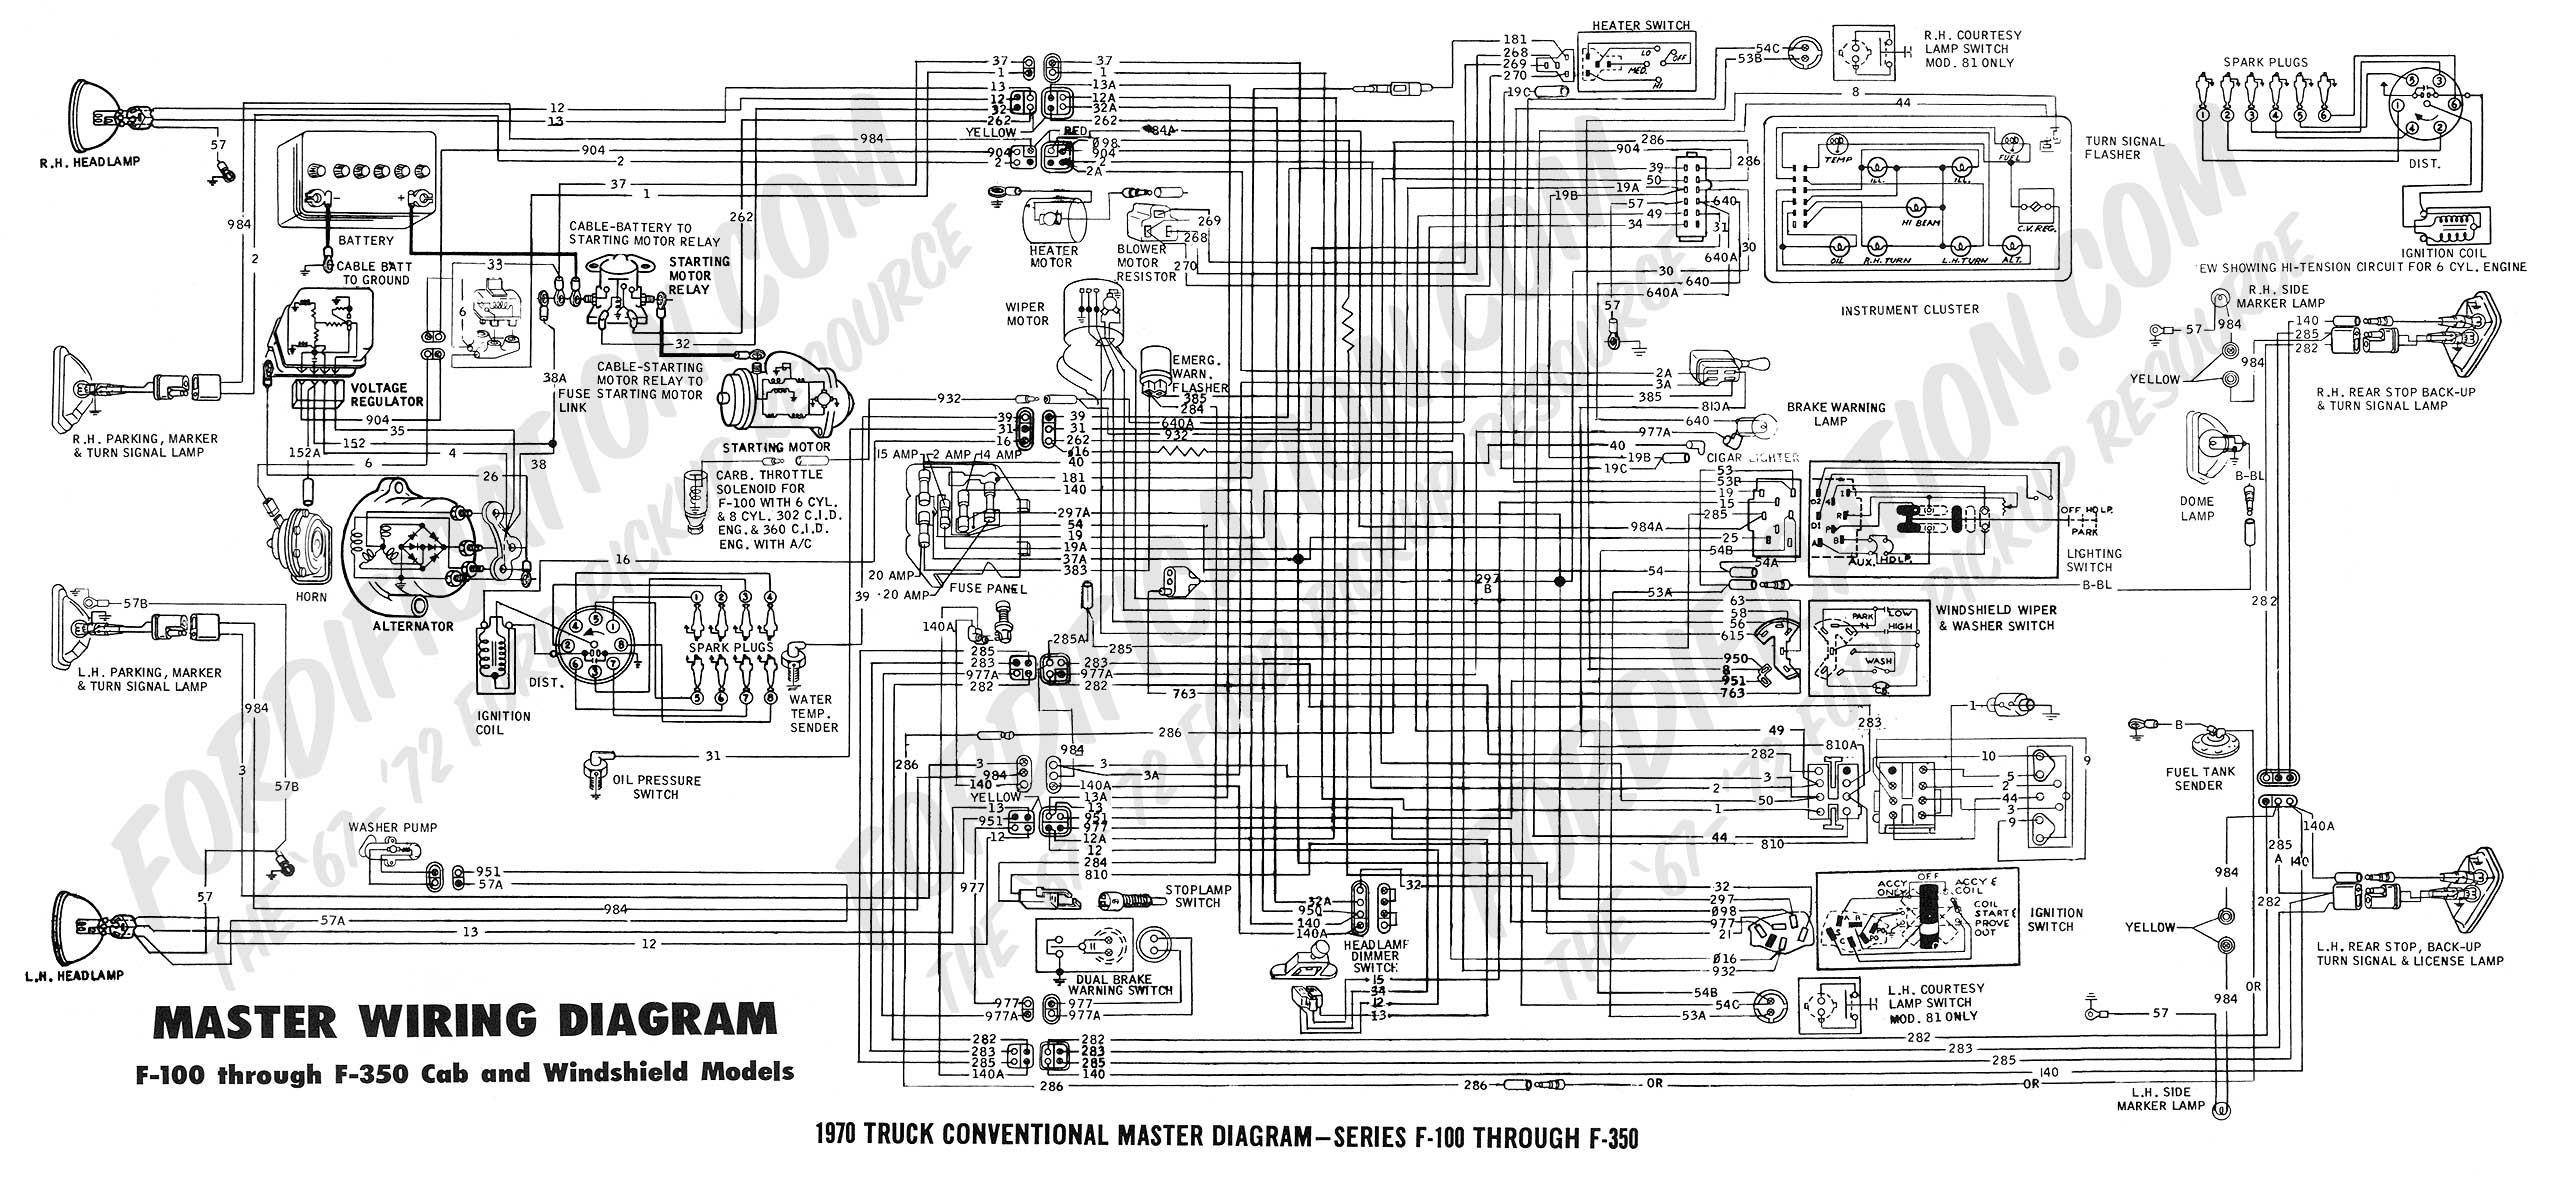 wiring diagram 1987 ford f 350 wiring diagram1986 ford f250 wiring diagram 4 hyn capecoral bootsvermietung de \\u2022